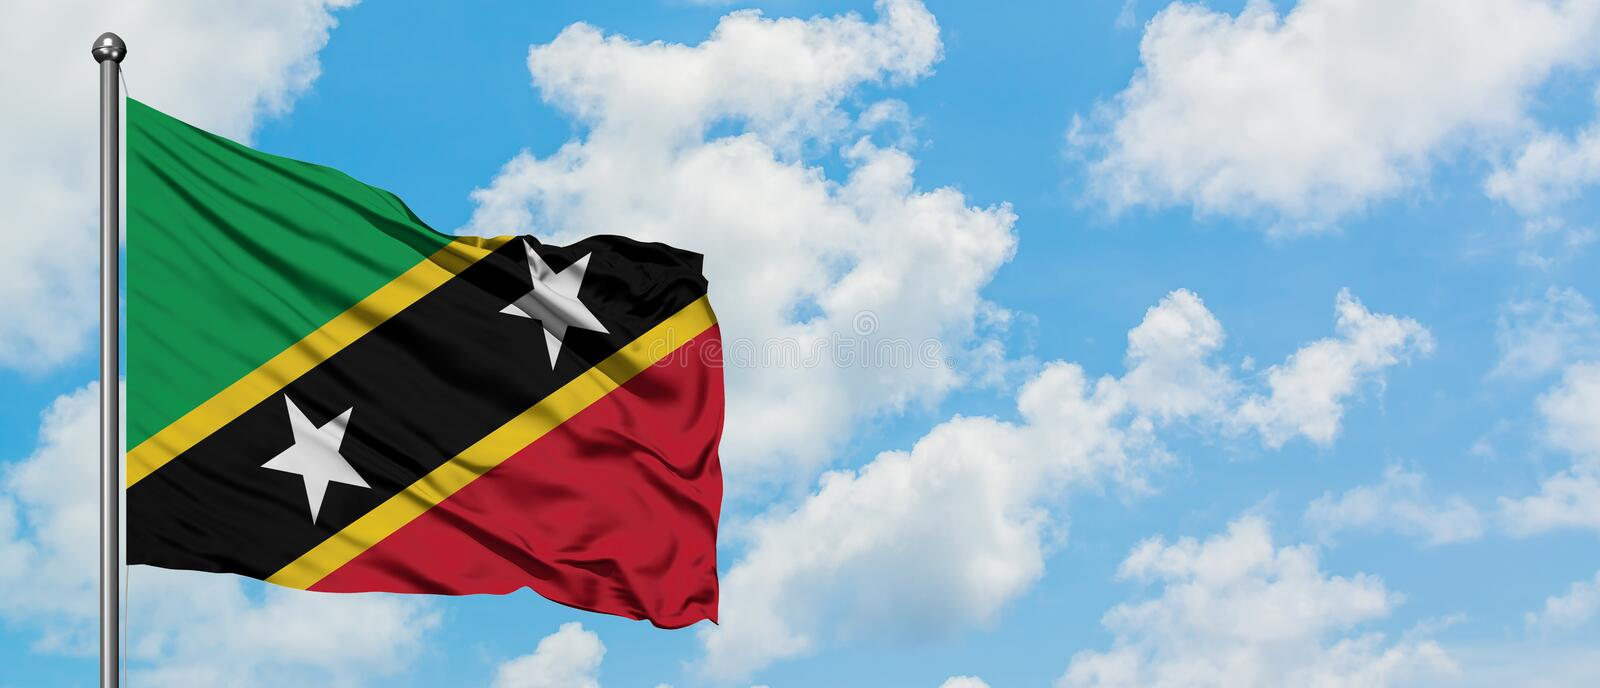 Saint Kitts And Nevis flag waving in the wind against white cloudy blue sky. Diplomacy concept, international relations.  stock photography